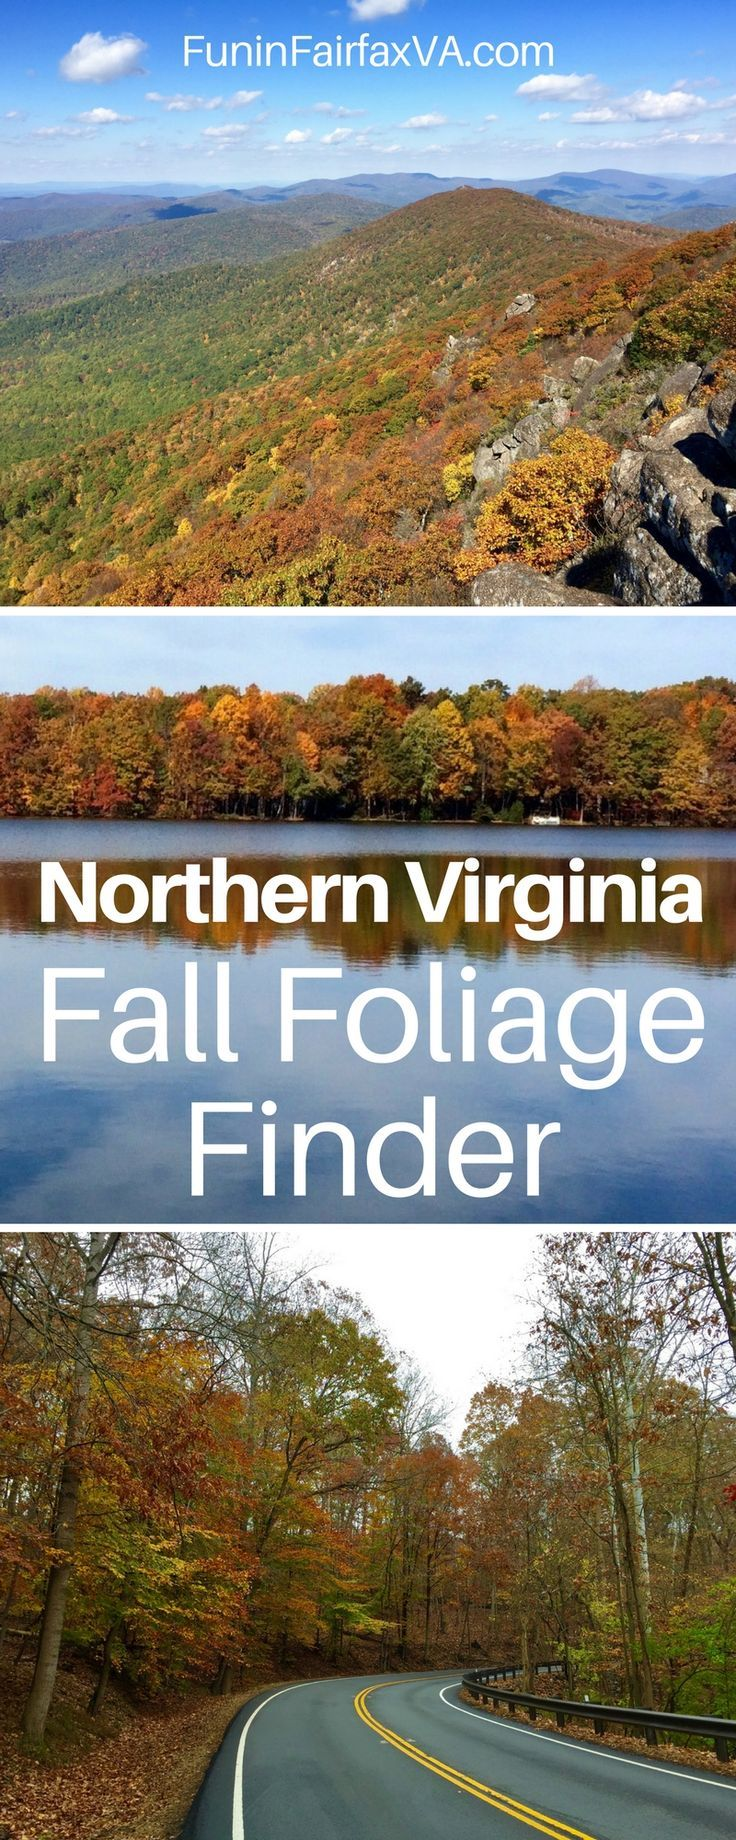 Find The Best Places To See Northern Virginia Fall Foliage For Locals And Visitors Seeking Beautiful Autumn Colors Fun Outings Near Washington Dc